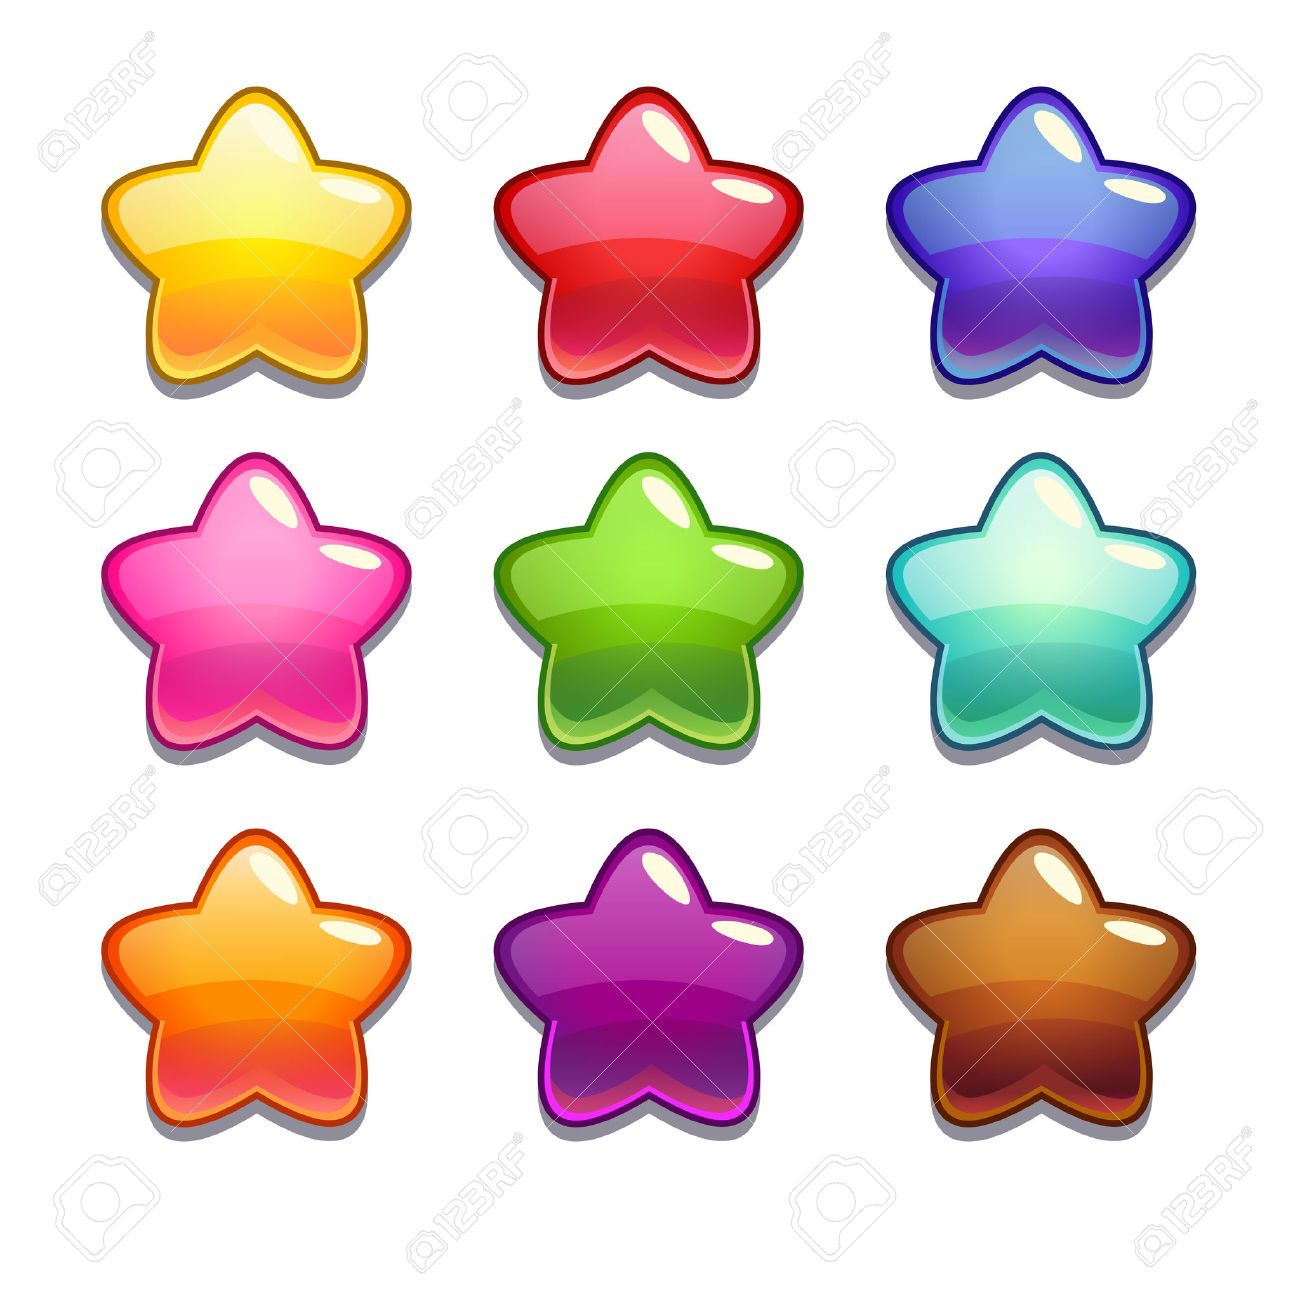 Cute Cartoon Jelly Stars In Different Colors Isolated Vector Cute Cartoon Cartoon Heart Cute Drawings